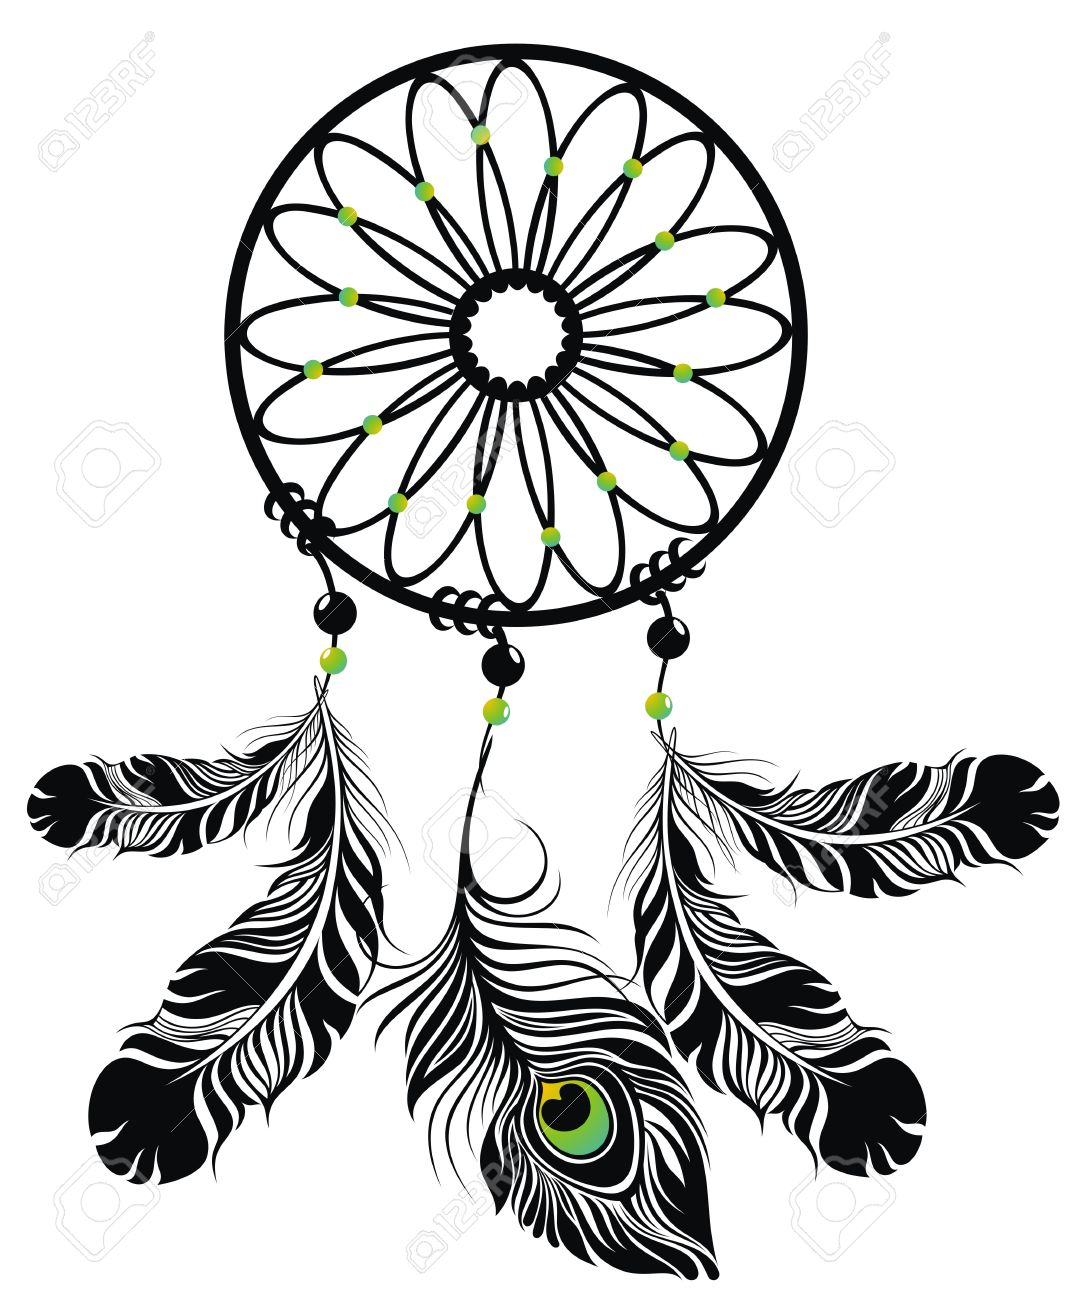 dream catcher royalty free cliparts vectors and stock illustration rh 123rf com dream catcher vector eps dream catcher vector free